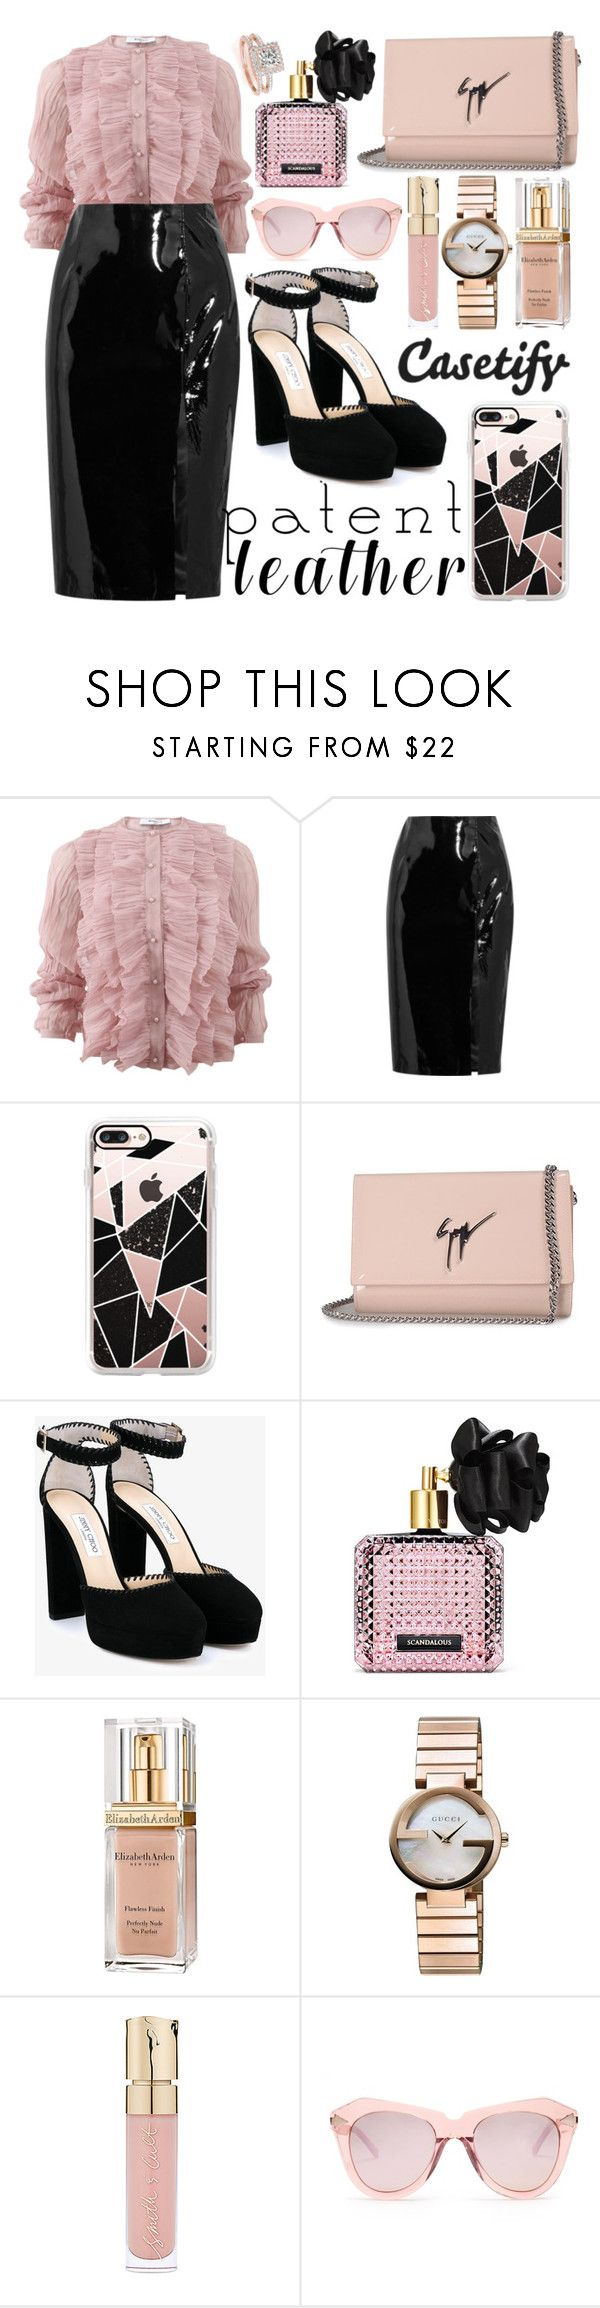 """""""City Slickers"""" by fattie-zara ❤ liked on Polyvore featuring Givenchy, Topshop Unique, Casetify, Giuseppe Zanotti, Jimmy Choo, Victoria's Secret, Elizabeth Arden, Gucci, Smith & Cult and Karen Walker"""